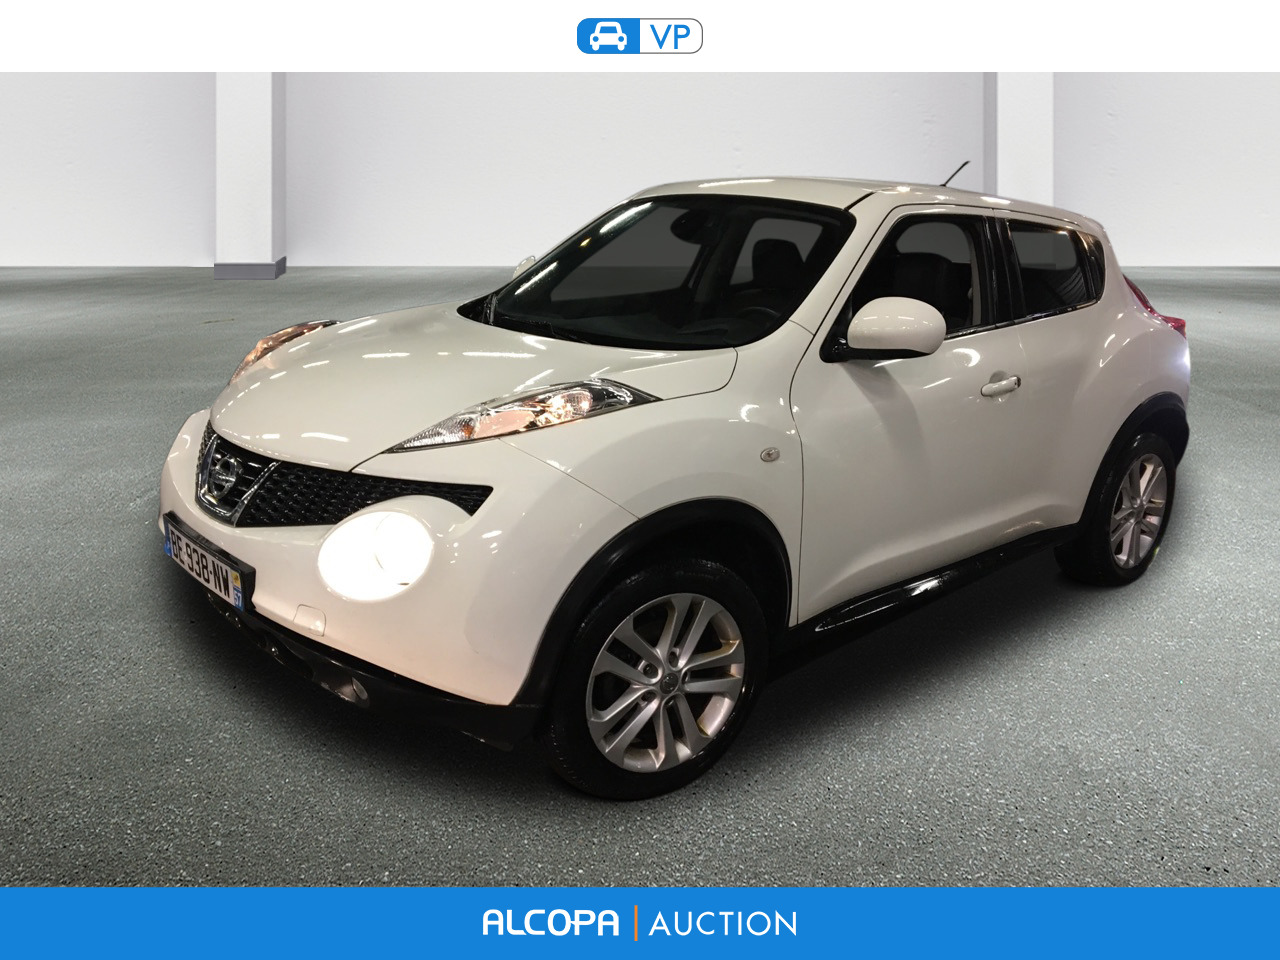 nissan juke juke 1 5 dci 110 fap tekna alcopa auction. Black Bedroom Furniture Sets. Home Design Ideas